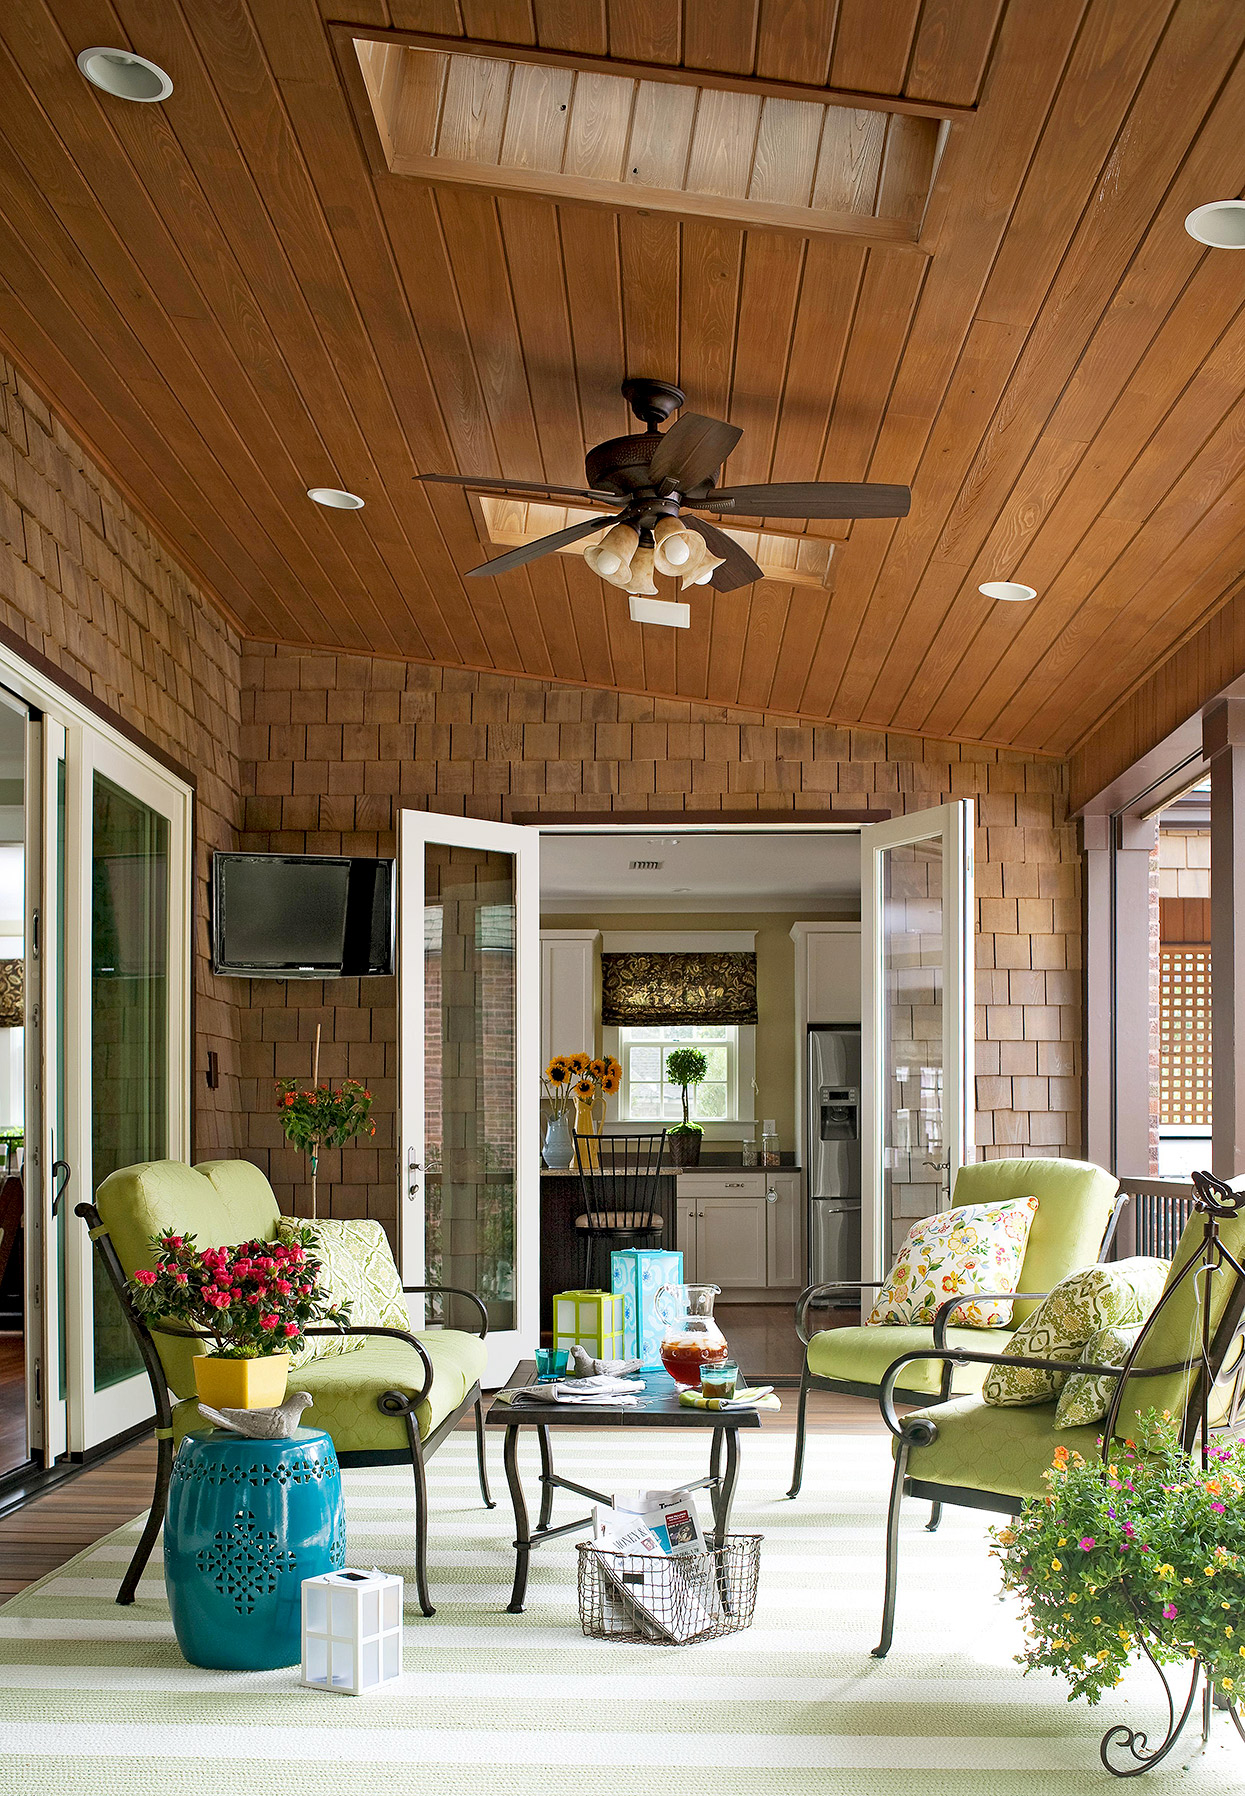 enclosed patio sitting area with slanted ceiling